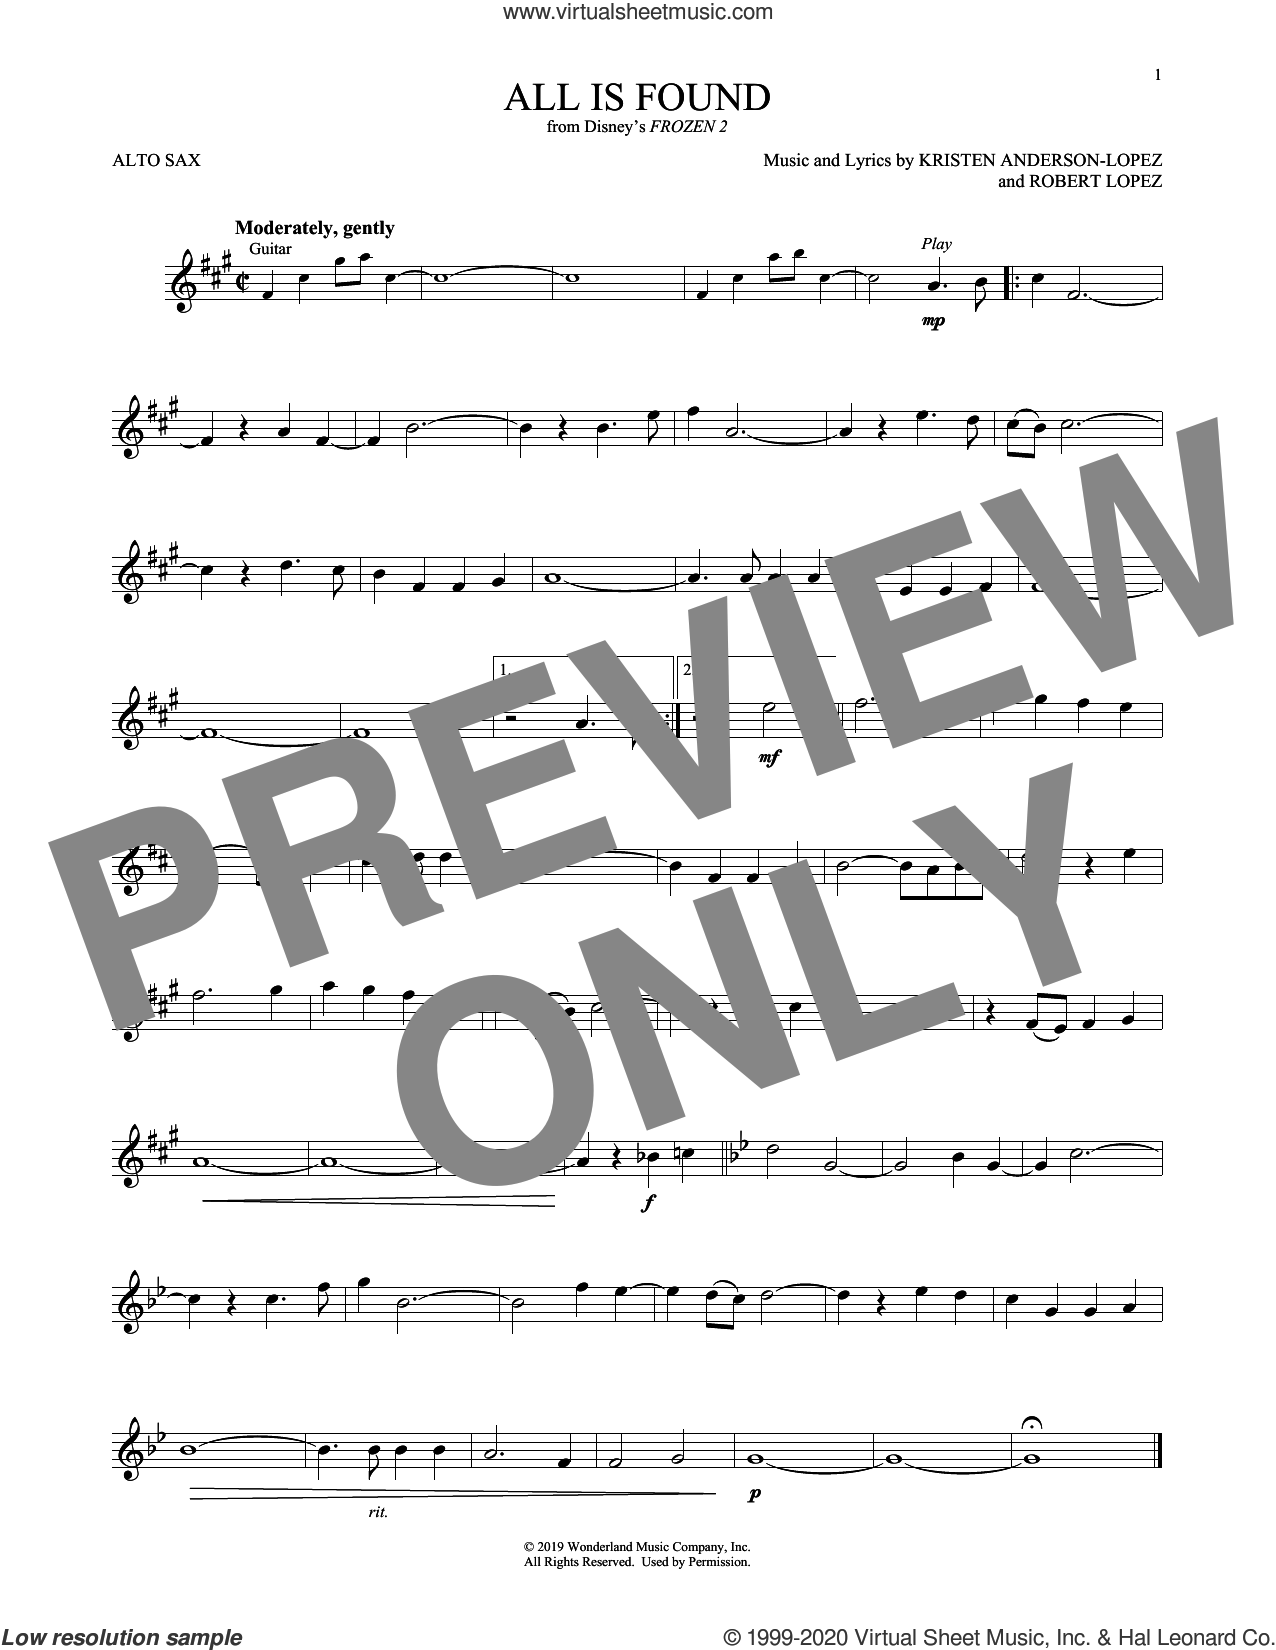 All Is Found (from Disney's Frozen 2) sheet music for alto saxophone solo by Evan Rachel Wood, Kristen Anderson-Lopez and Robert Lopez, intermediate skill level